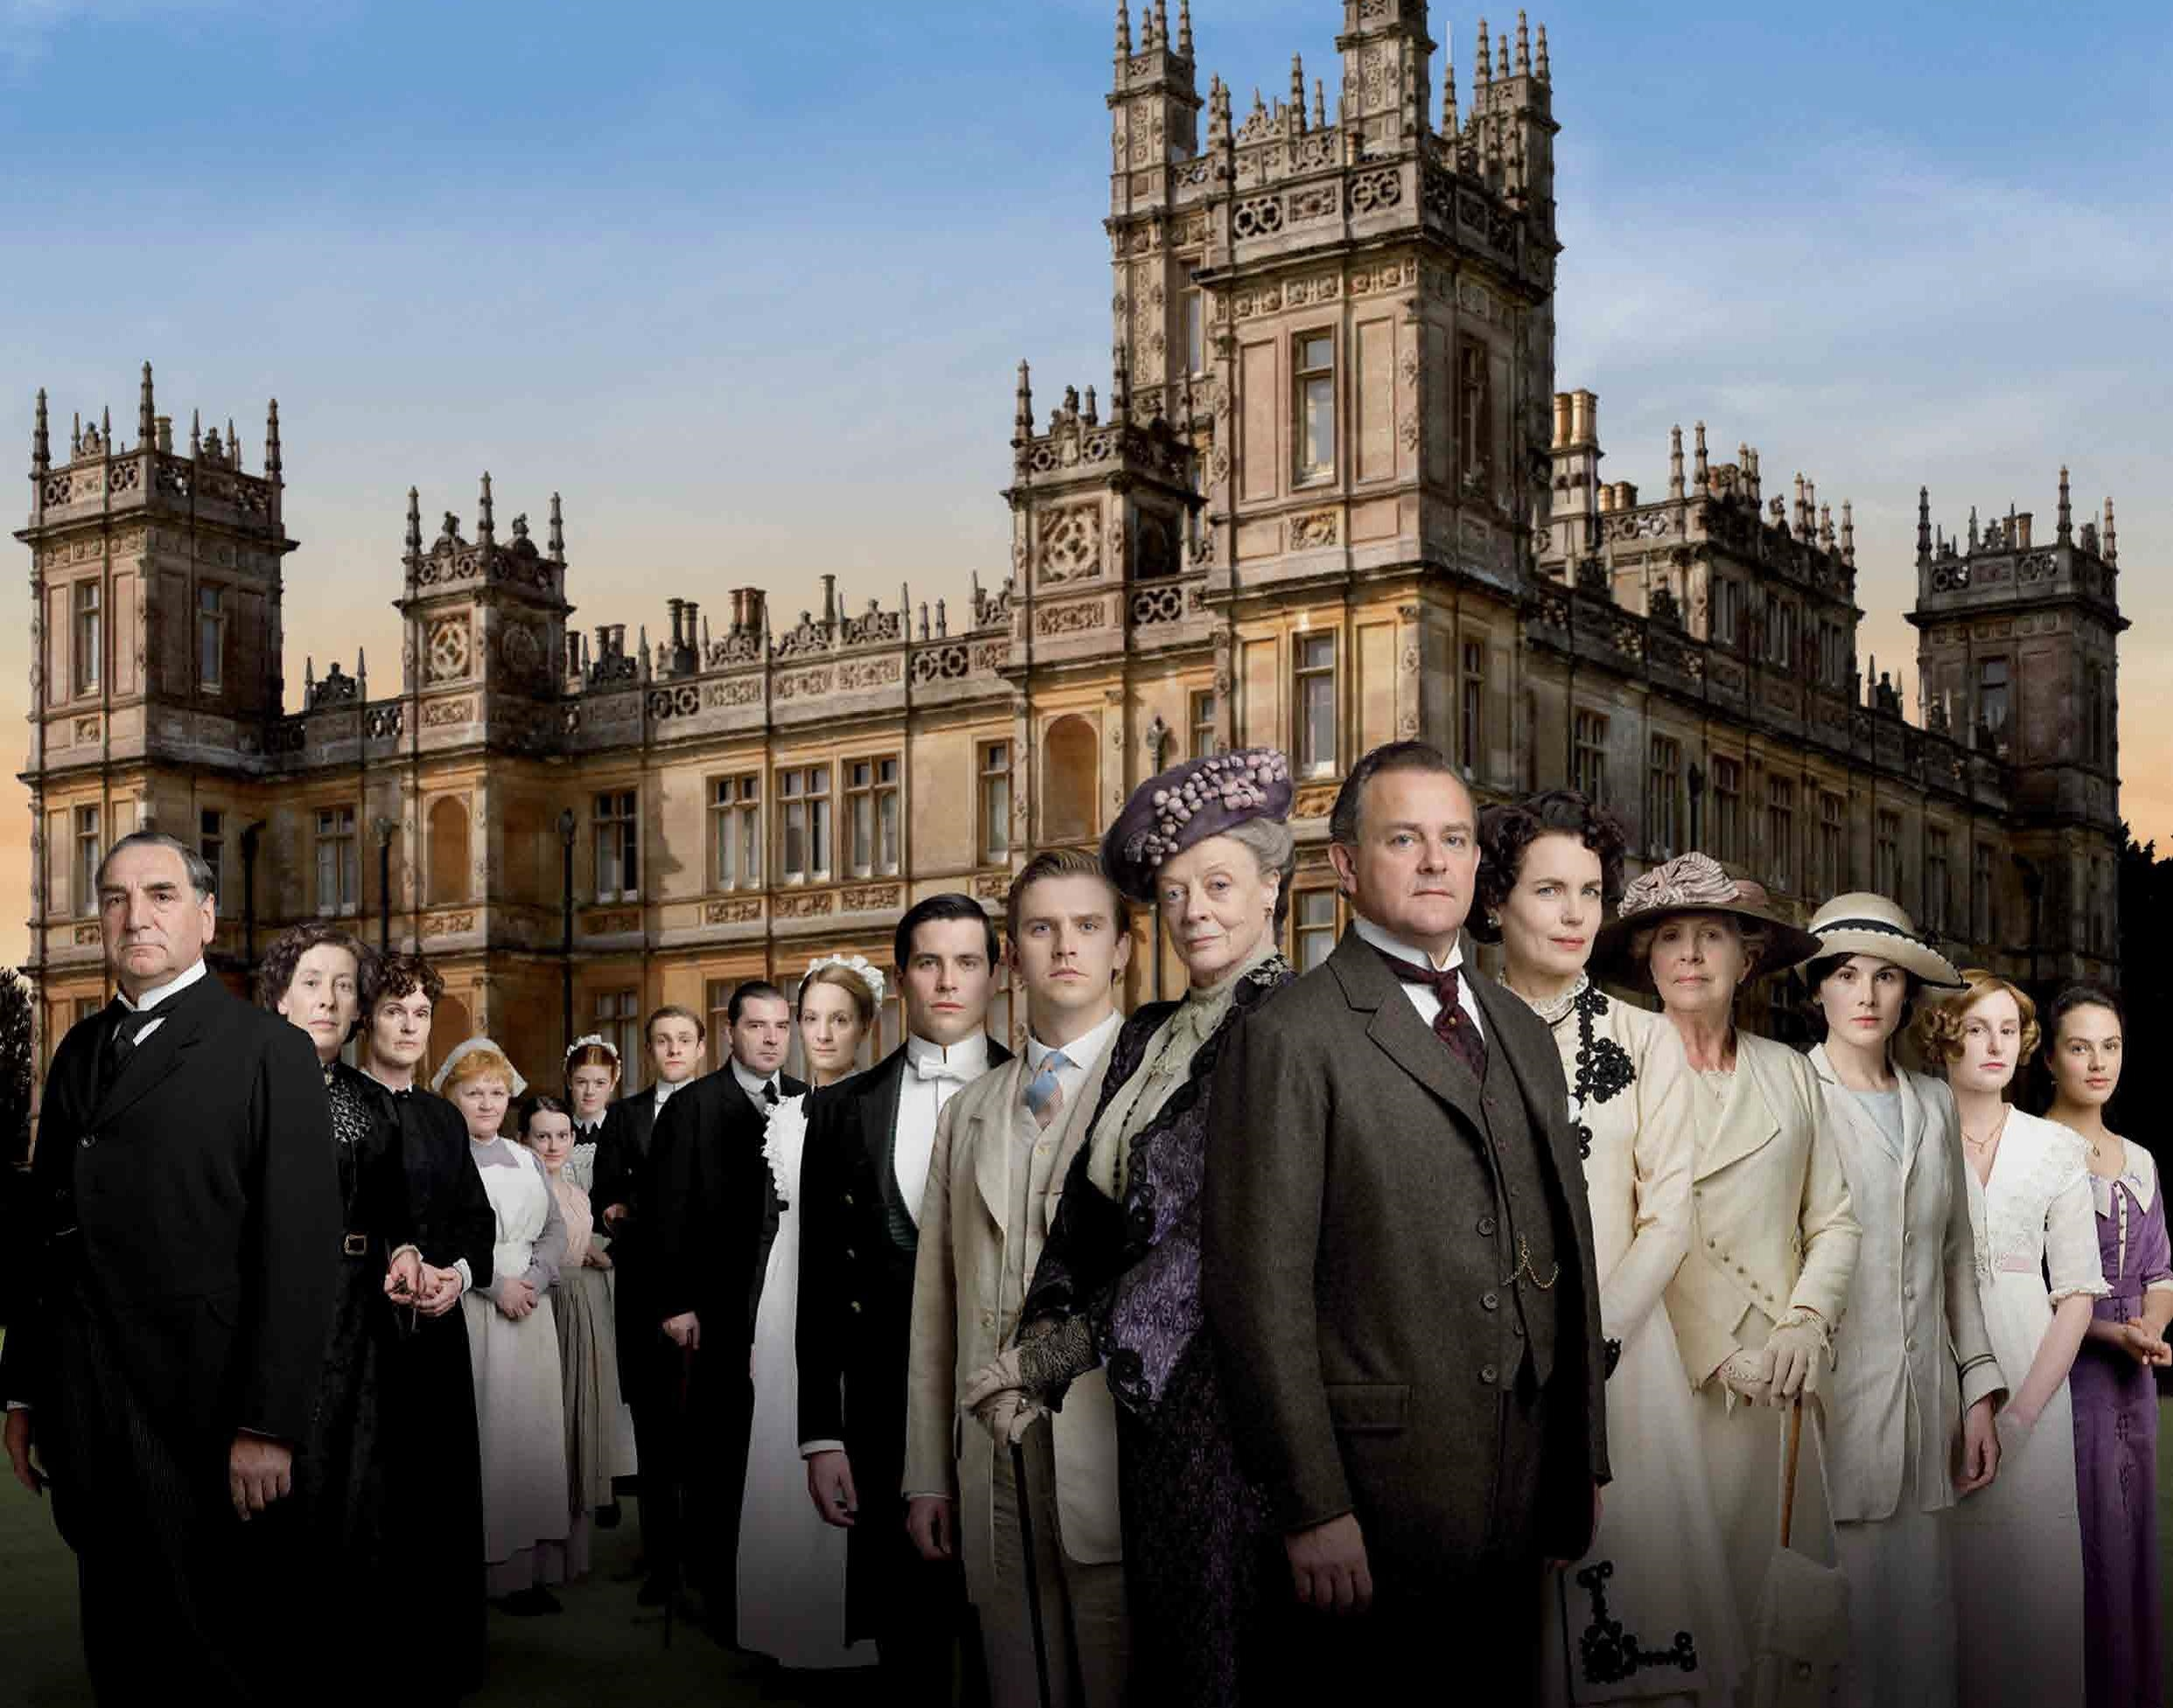 Downton Abbey Wine Coming Soon